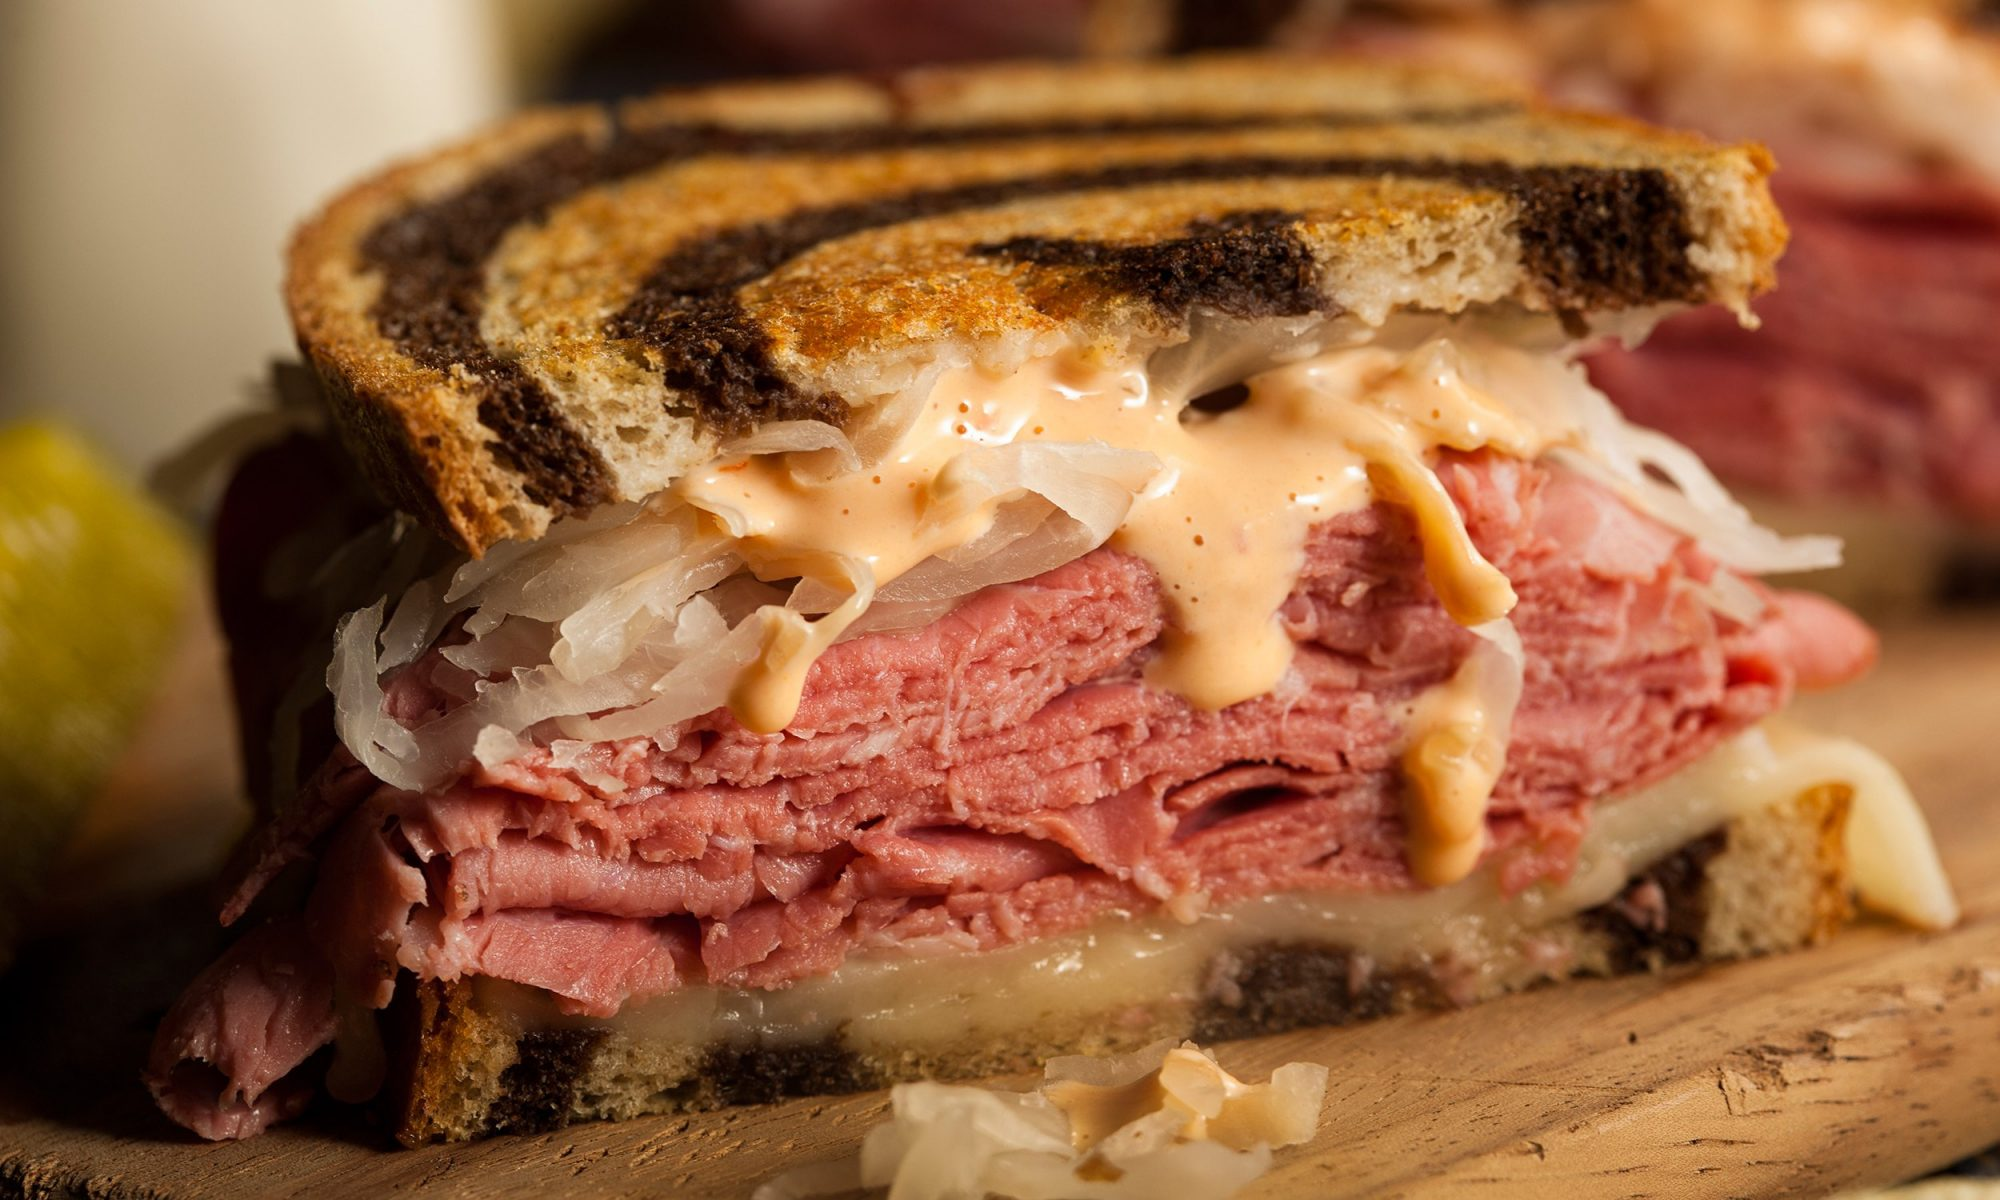 What's the Difference Between Pastrami and Corned Beef?